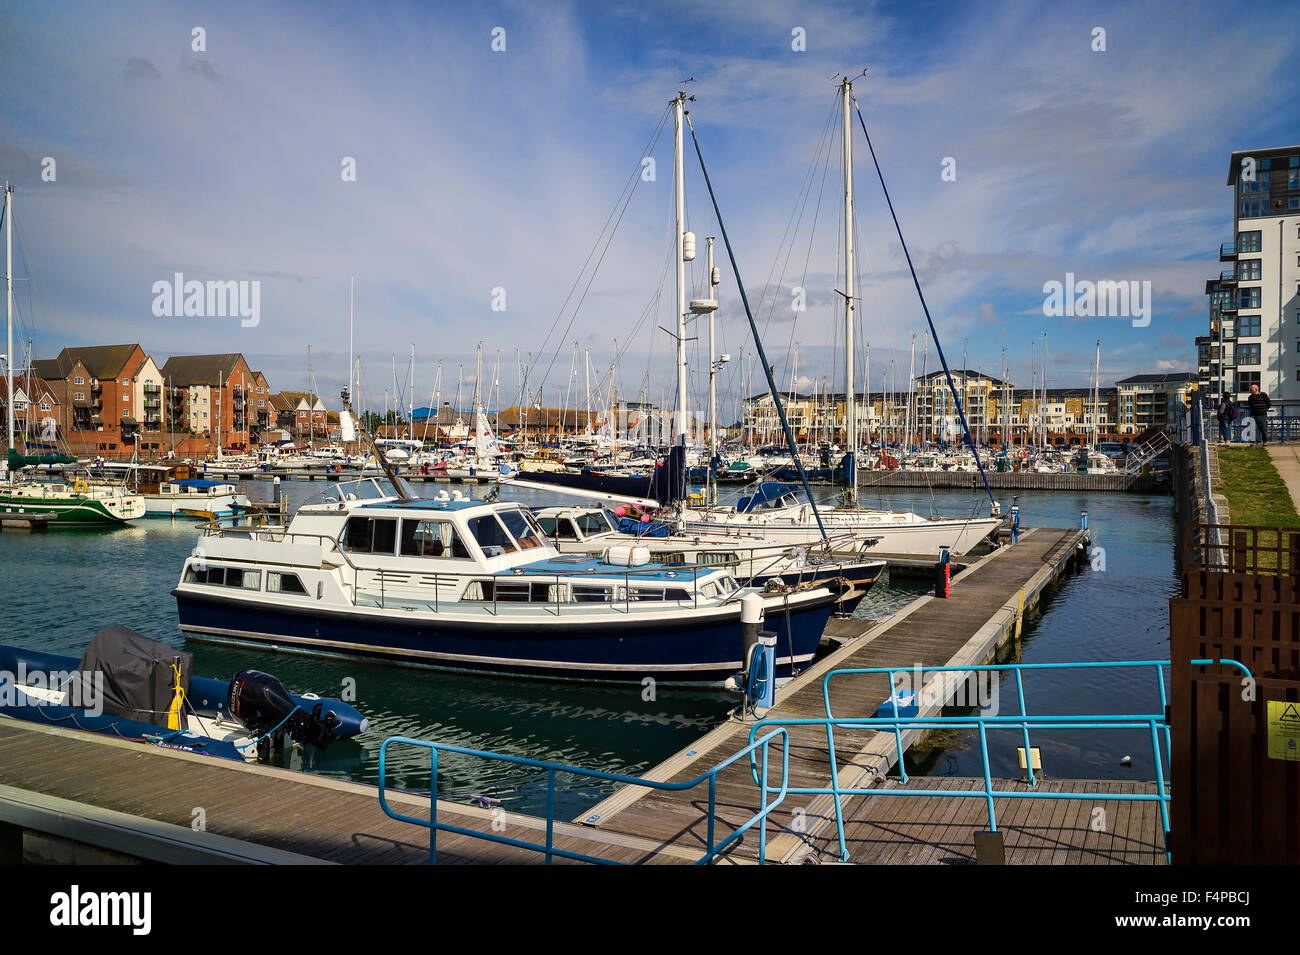 Eastbourne Marina with leisure craft in water - Stock Image